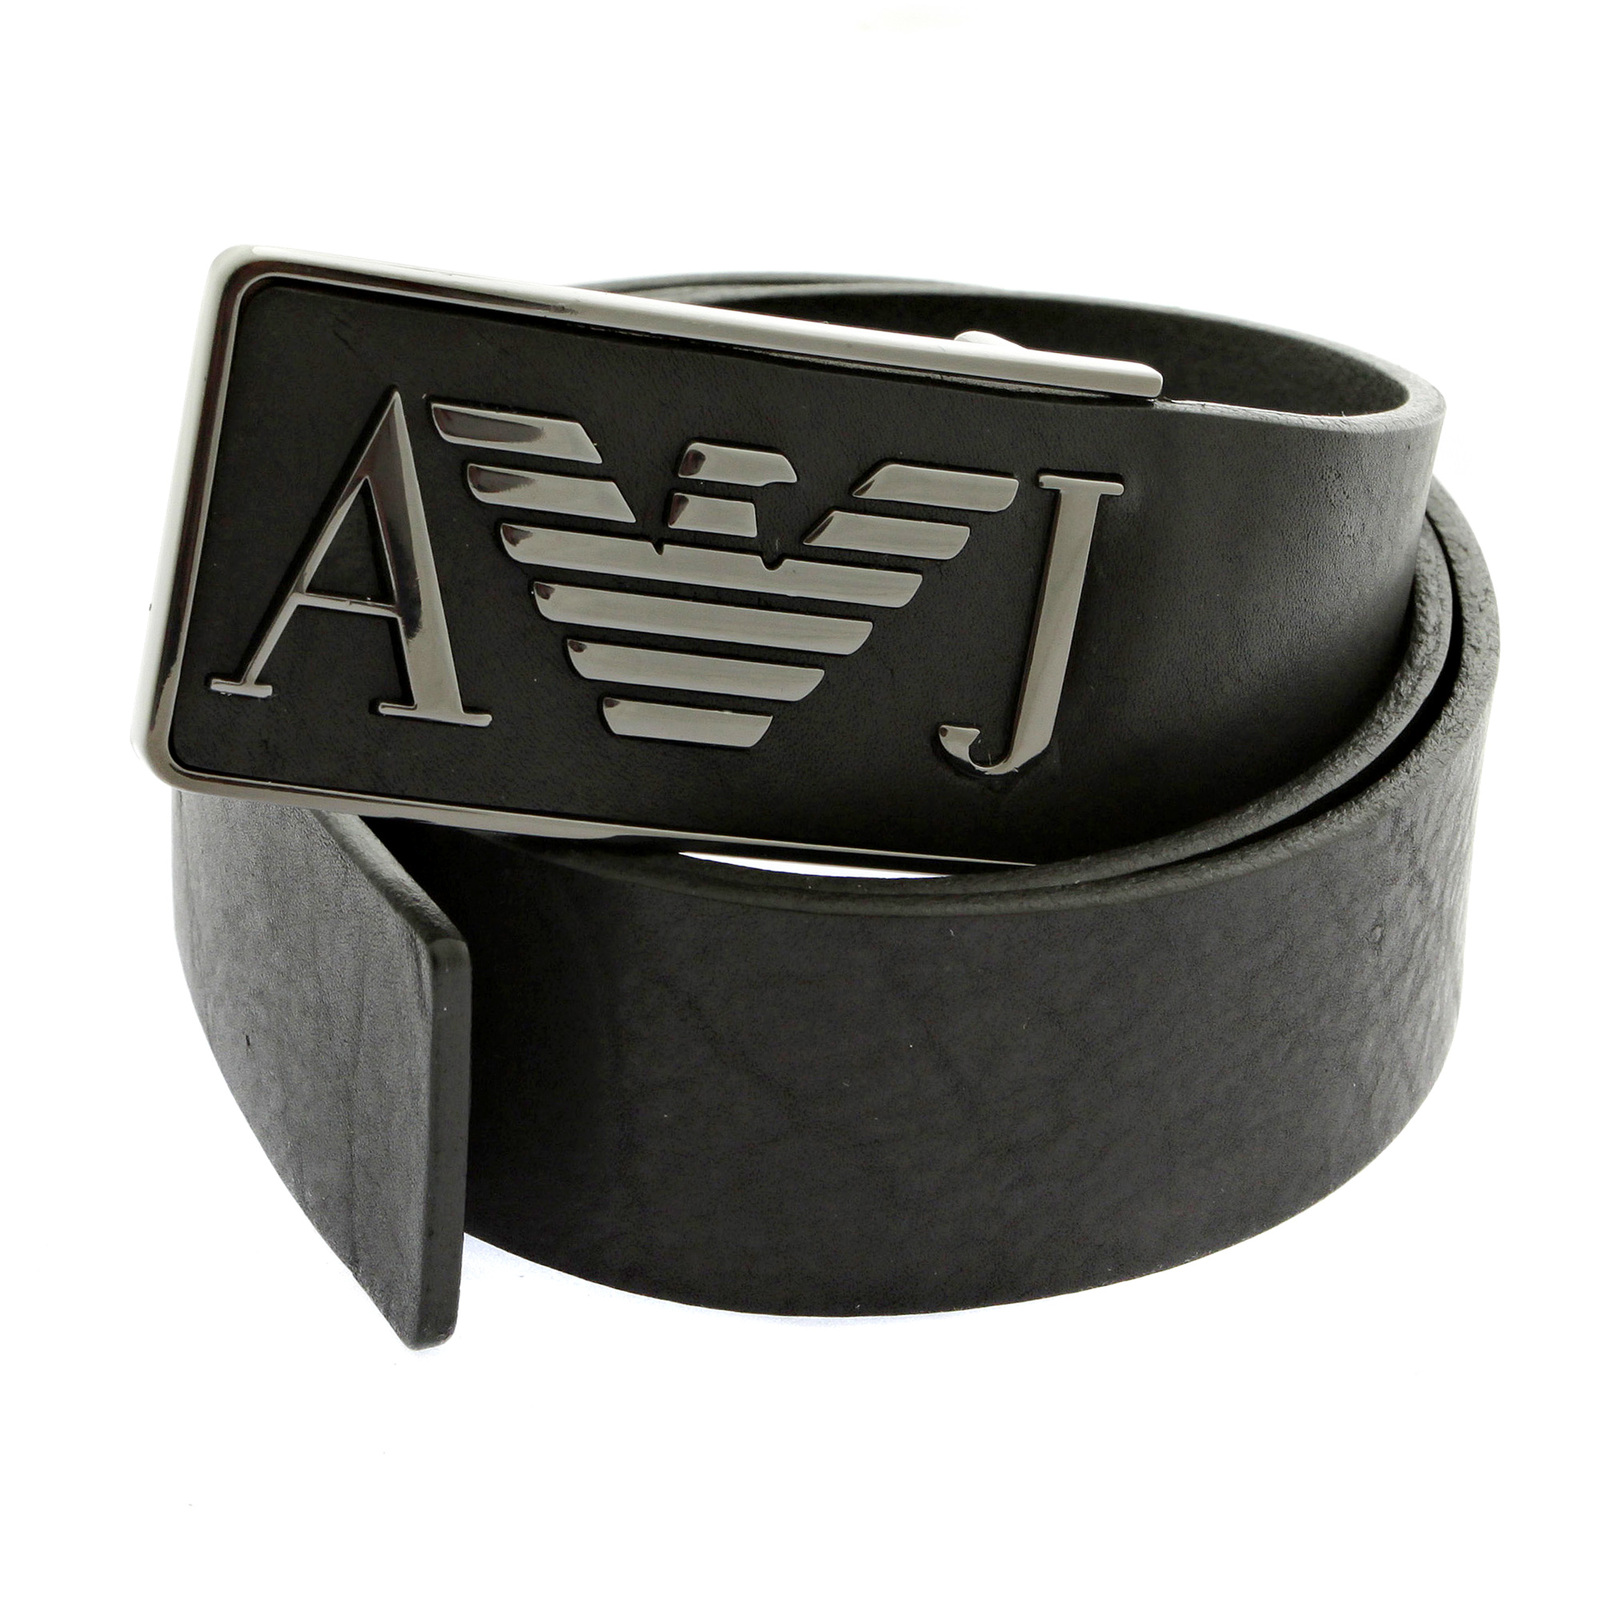 armani belt armani jeans casual black leather belt q6115 60 ajm2253 VWIPEVA